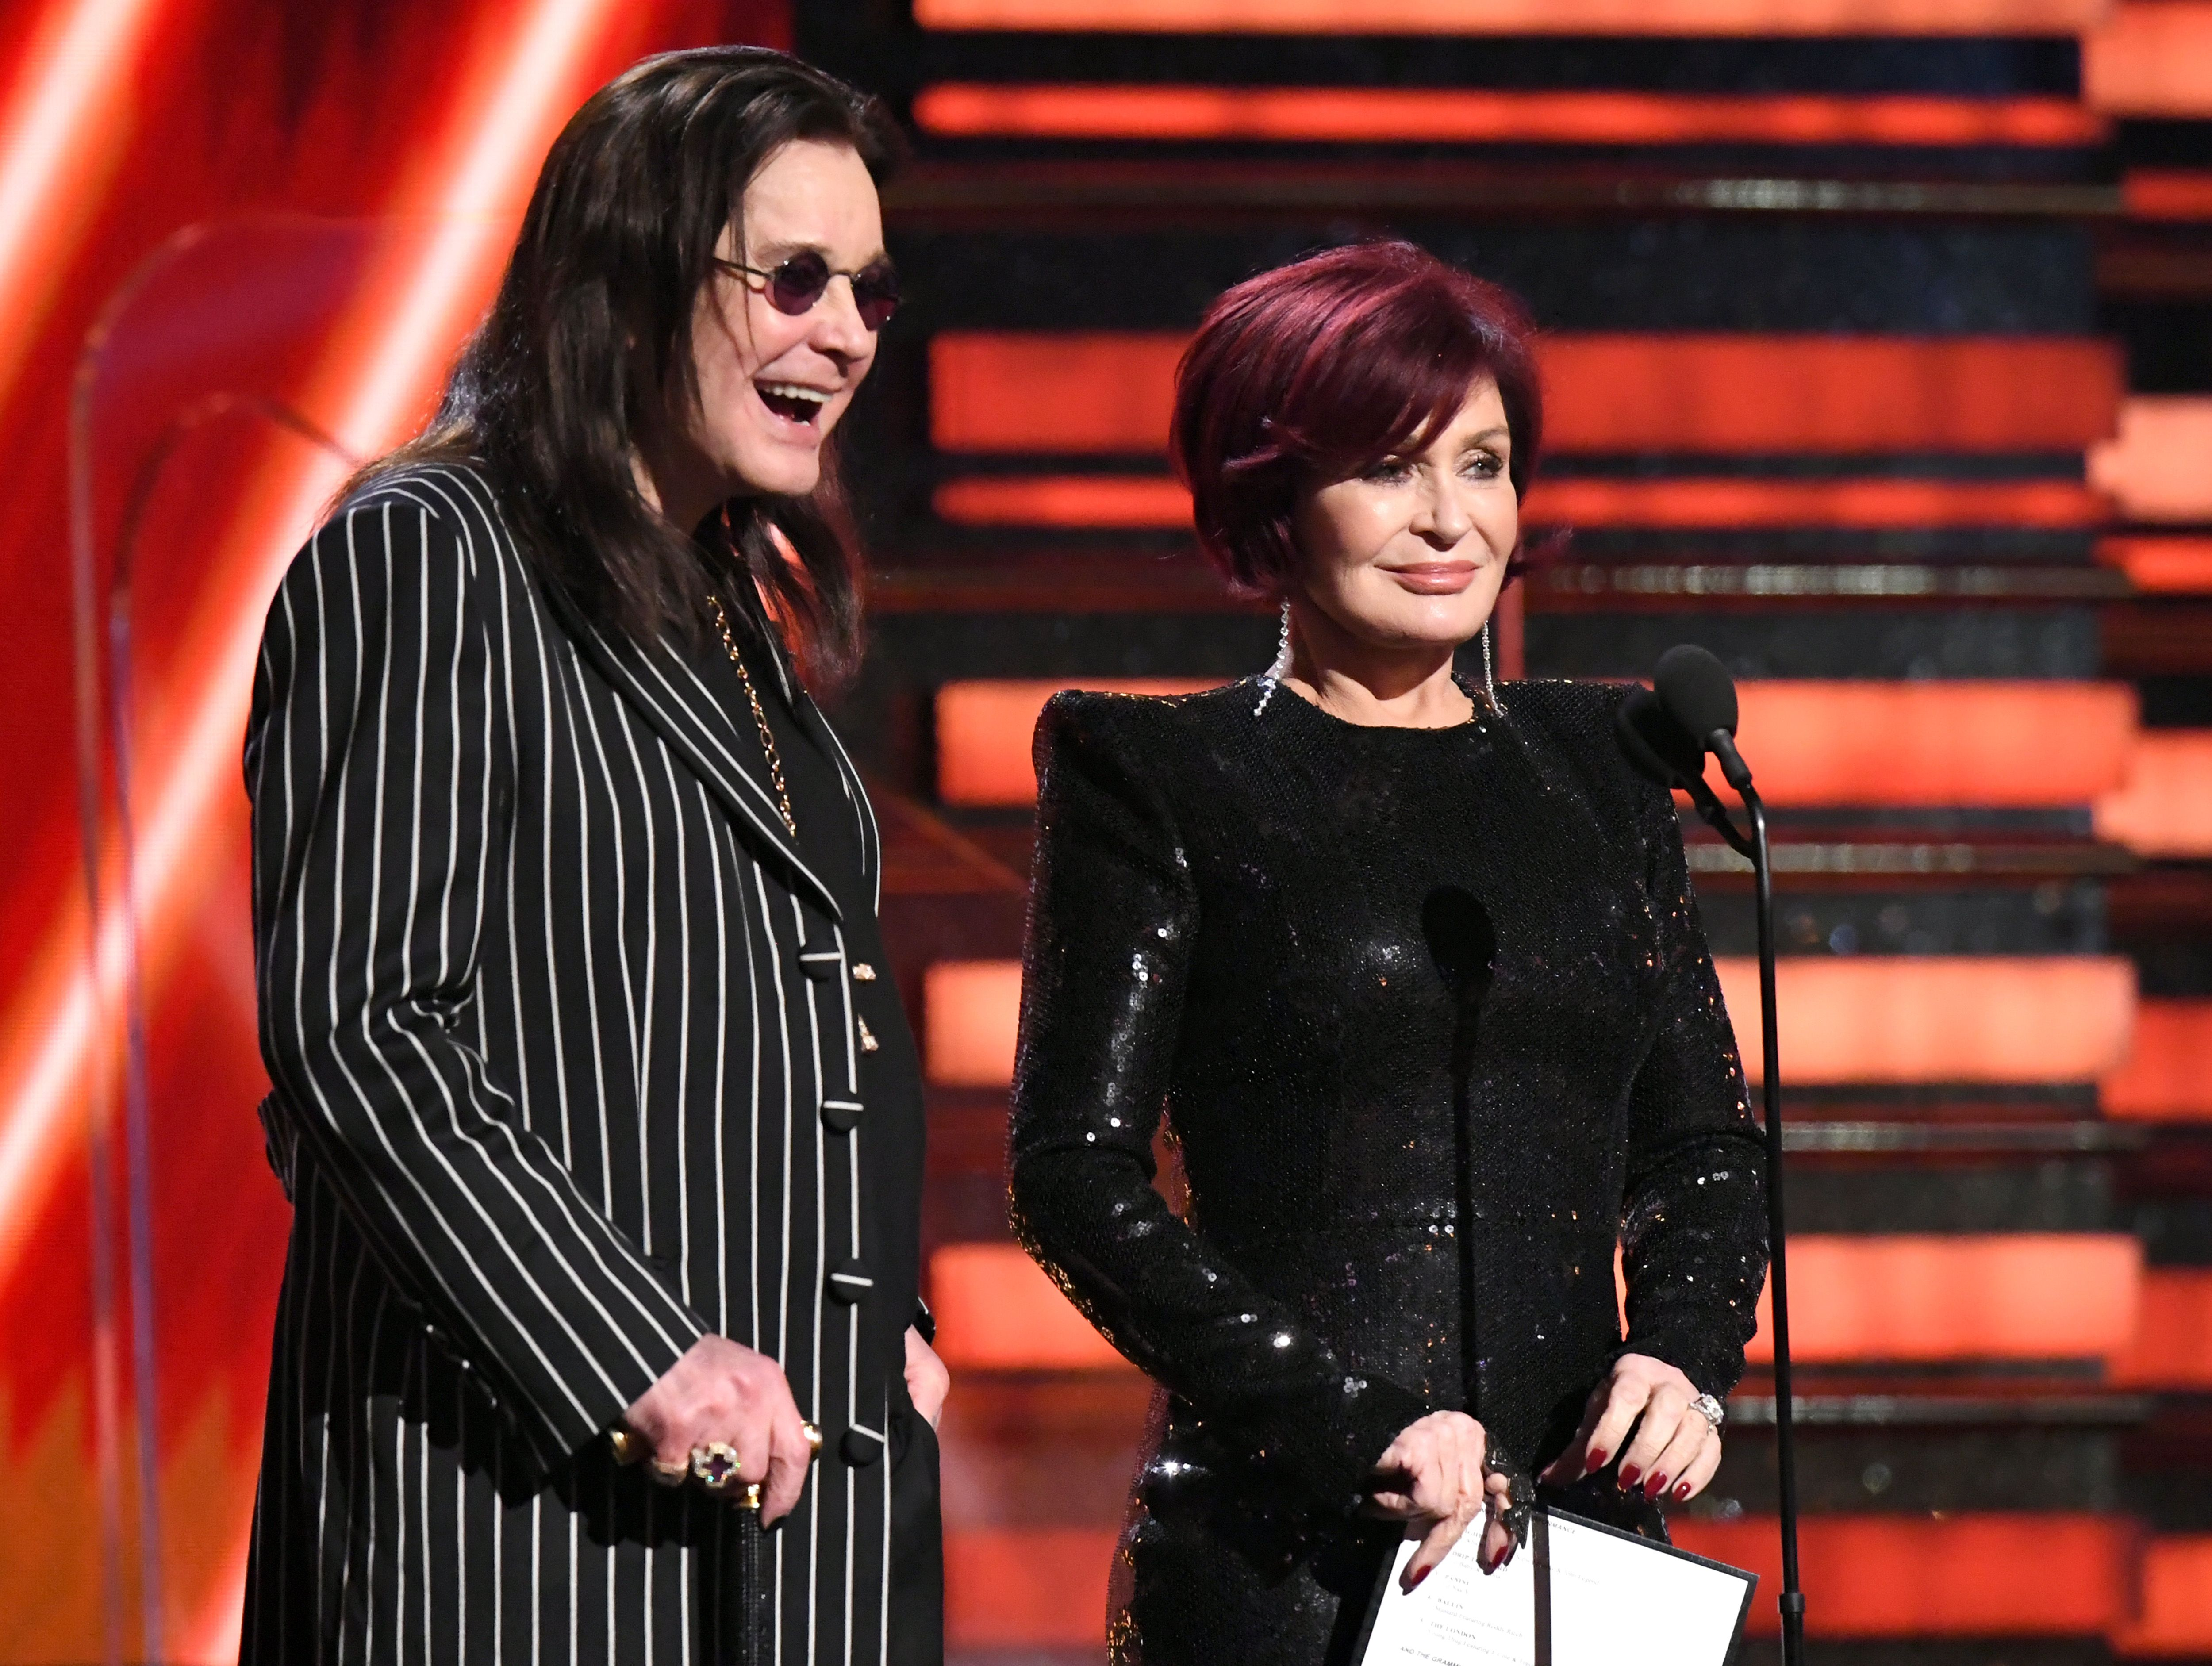 Ozzy Osbourne and Sharon Osbourne speak onstage at the 62nd Annual GRAMMY Awards at Staples Center on January 26, 2020 in Los Angeles, California   Photo: Getty Images